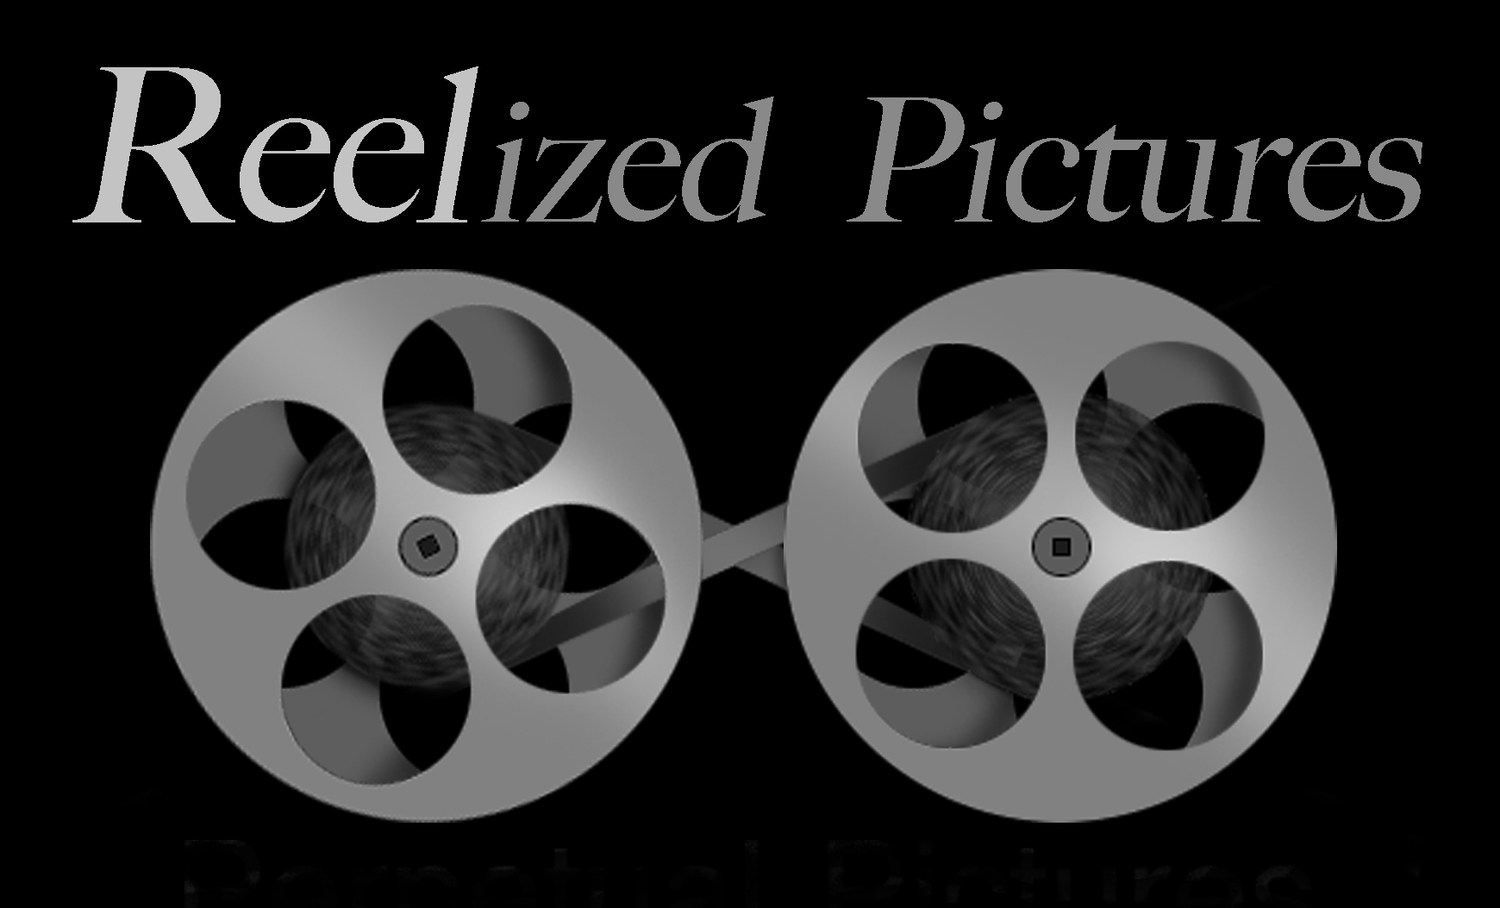 REELIZED PICTURES